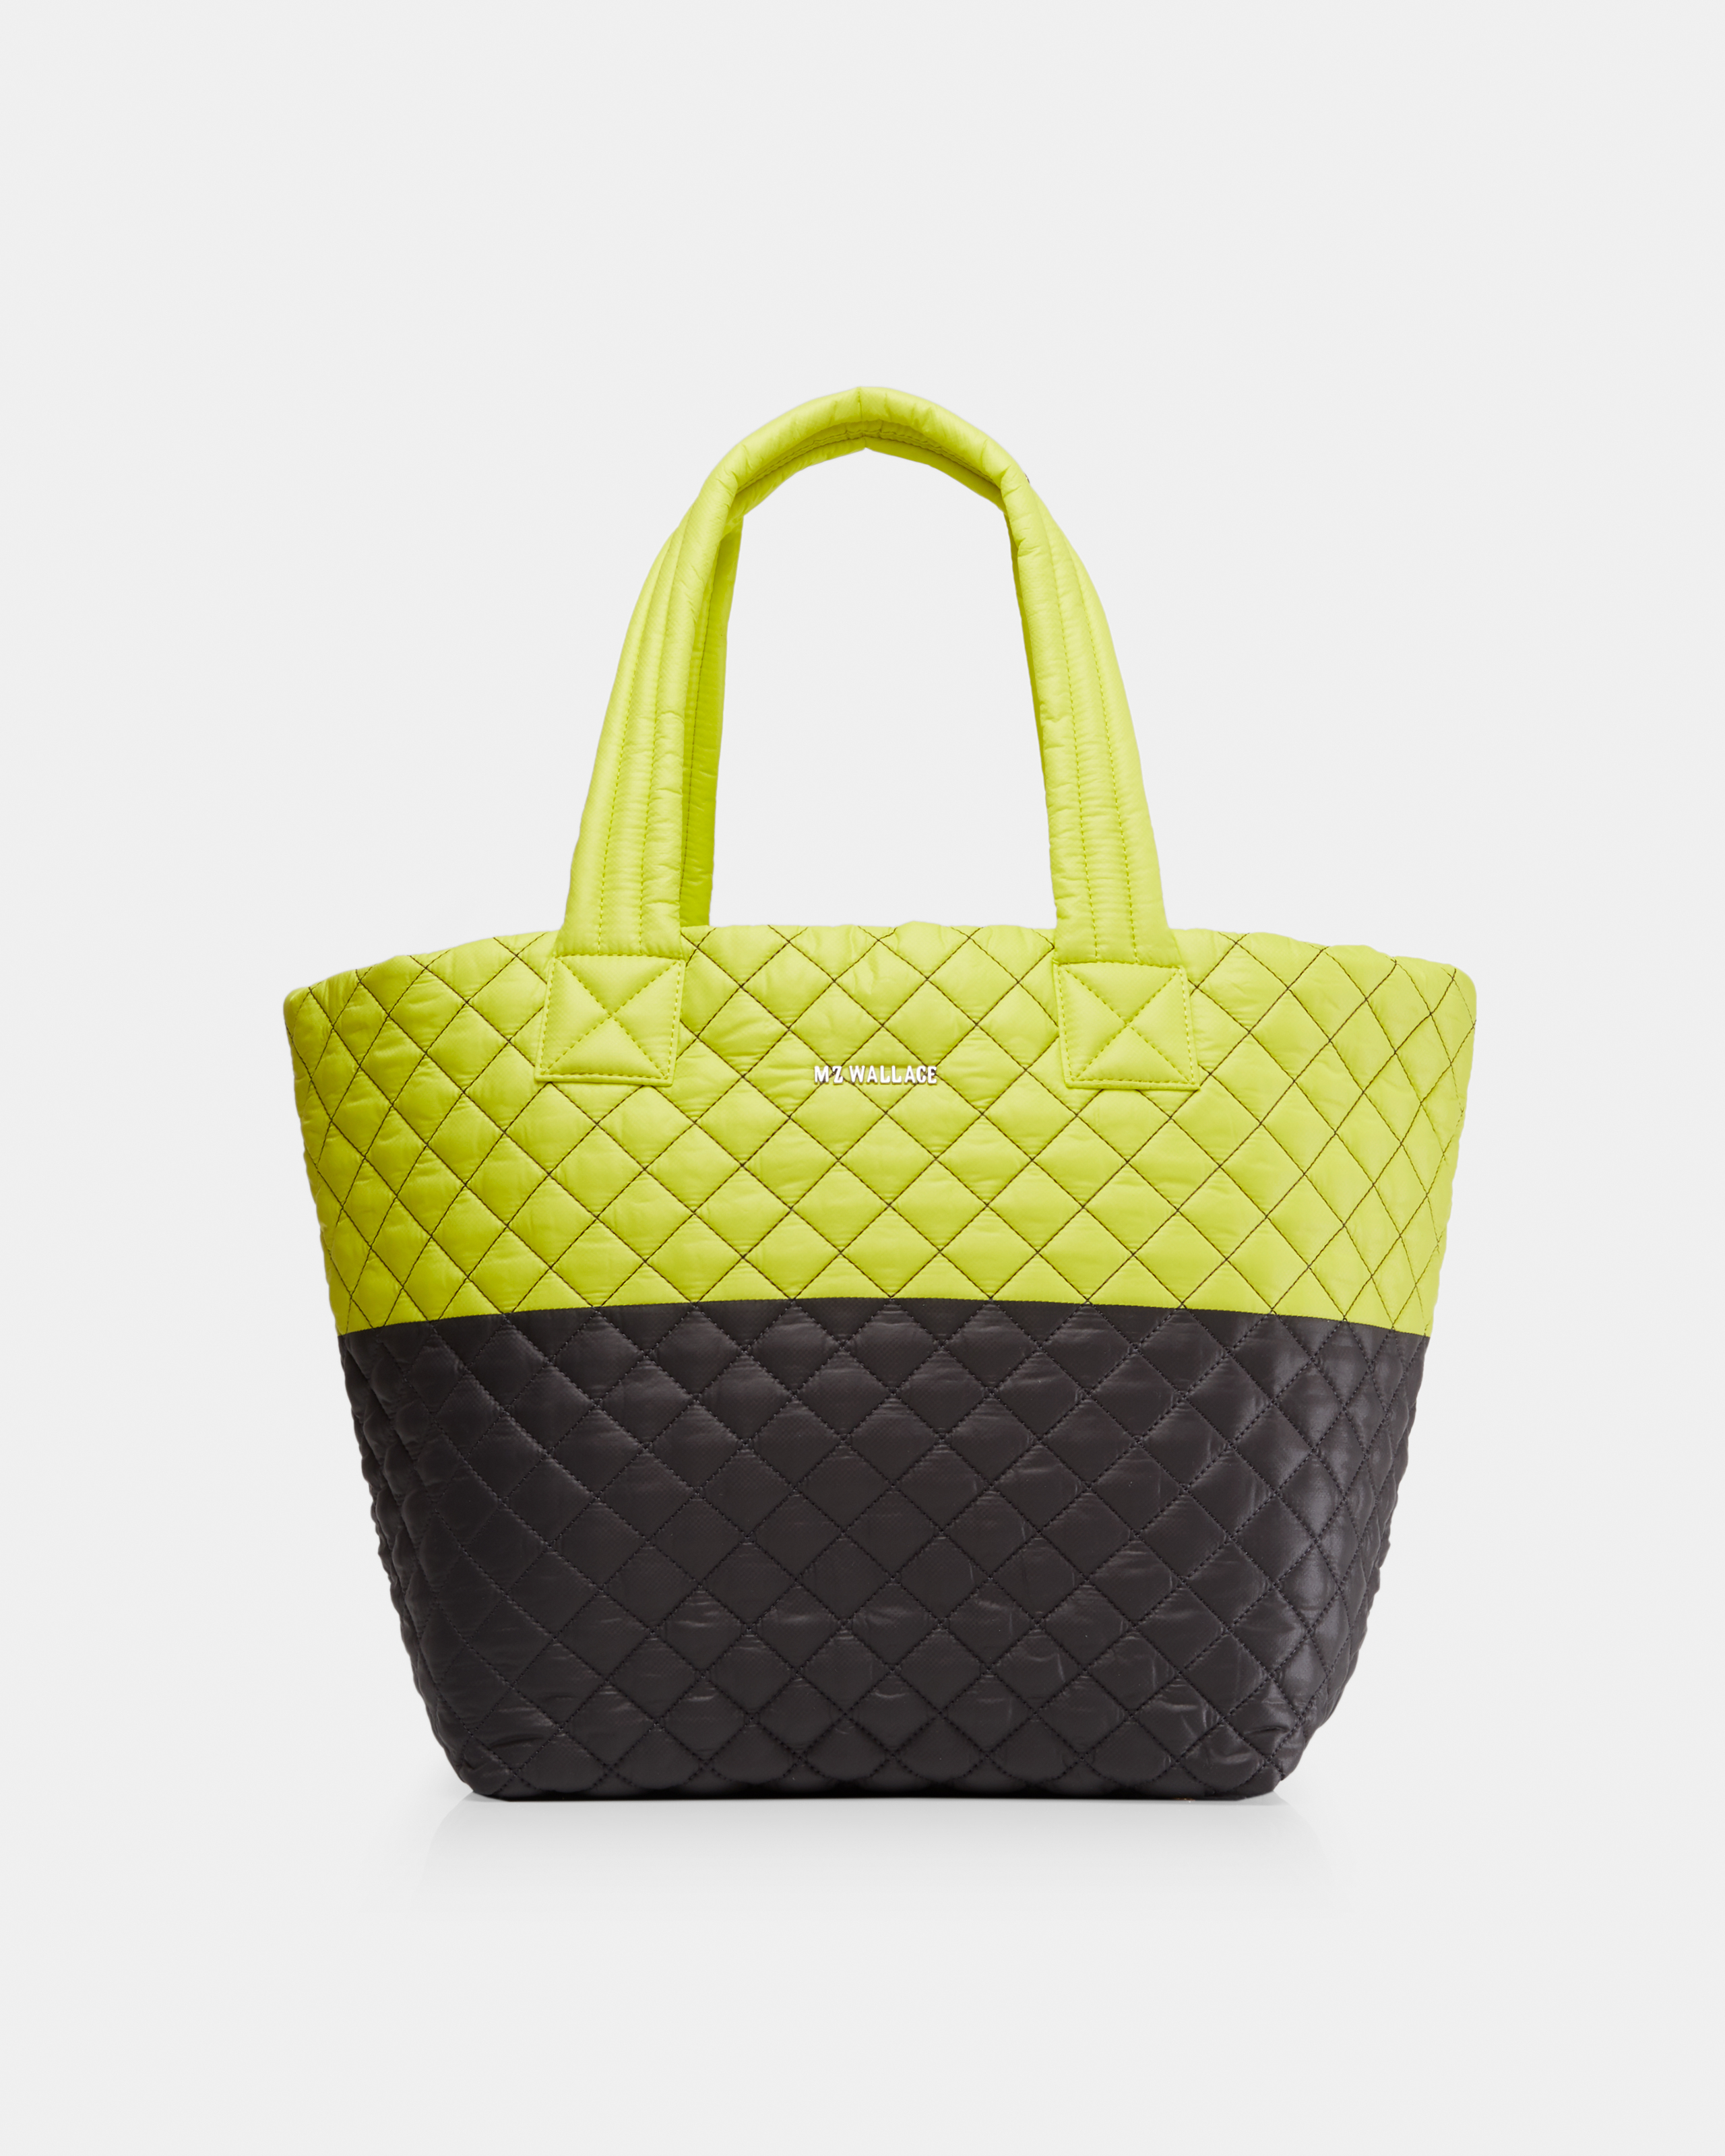 Neon Yellow/Magnet Oxford Metro Tote (3761370) in color Neon Yellow & Magnet